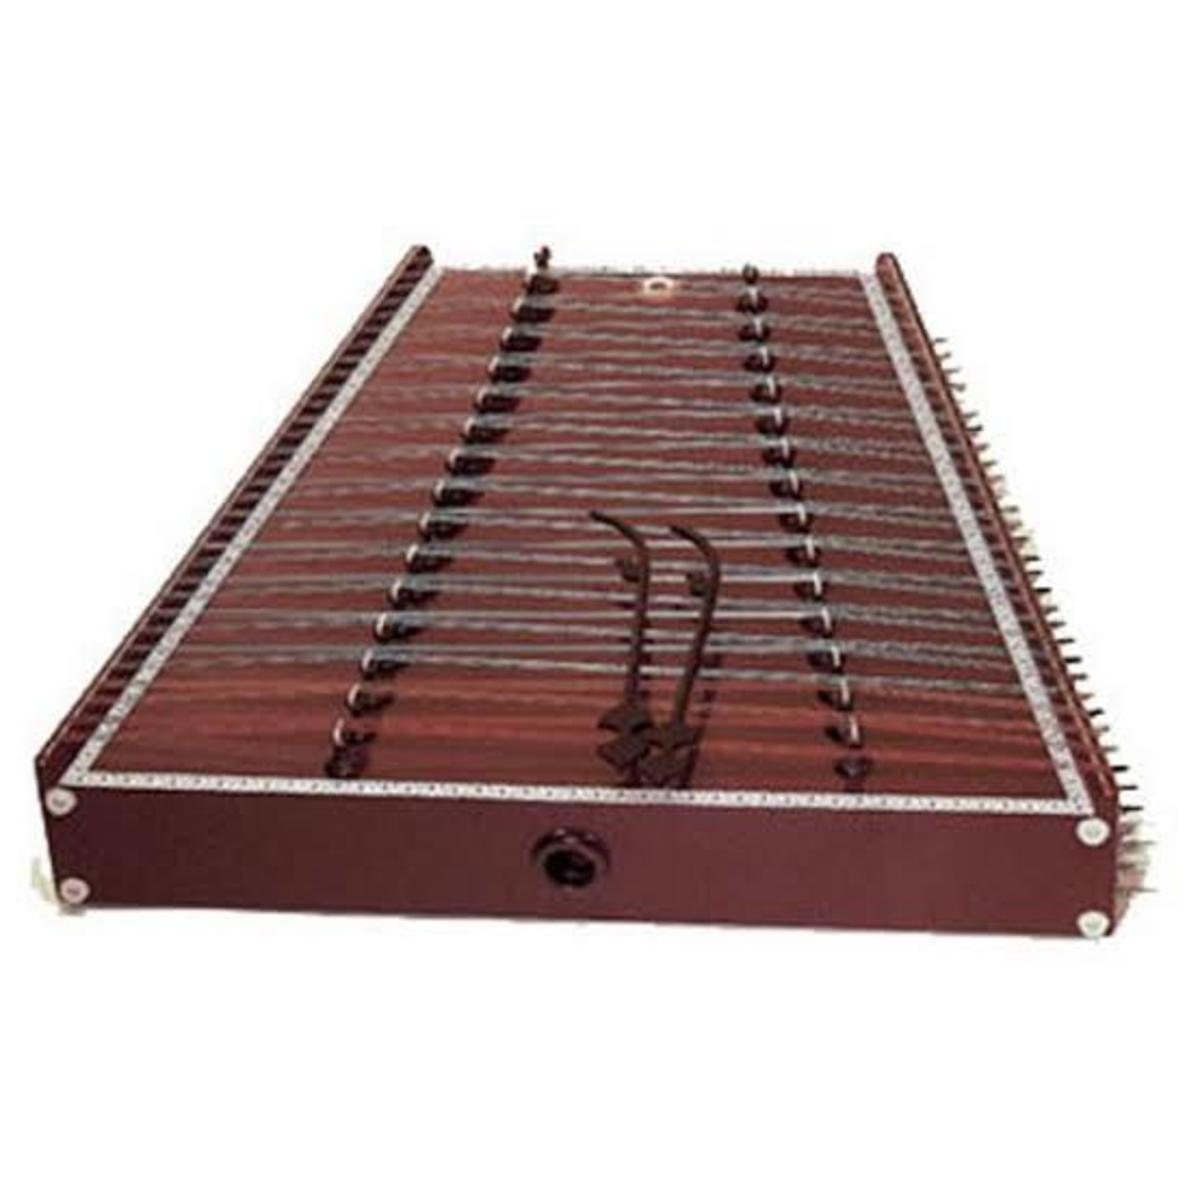 Indian musical instrument, Santoor